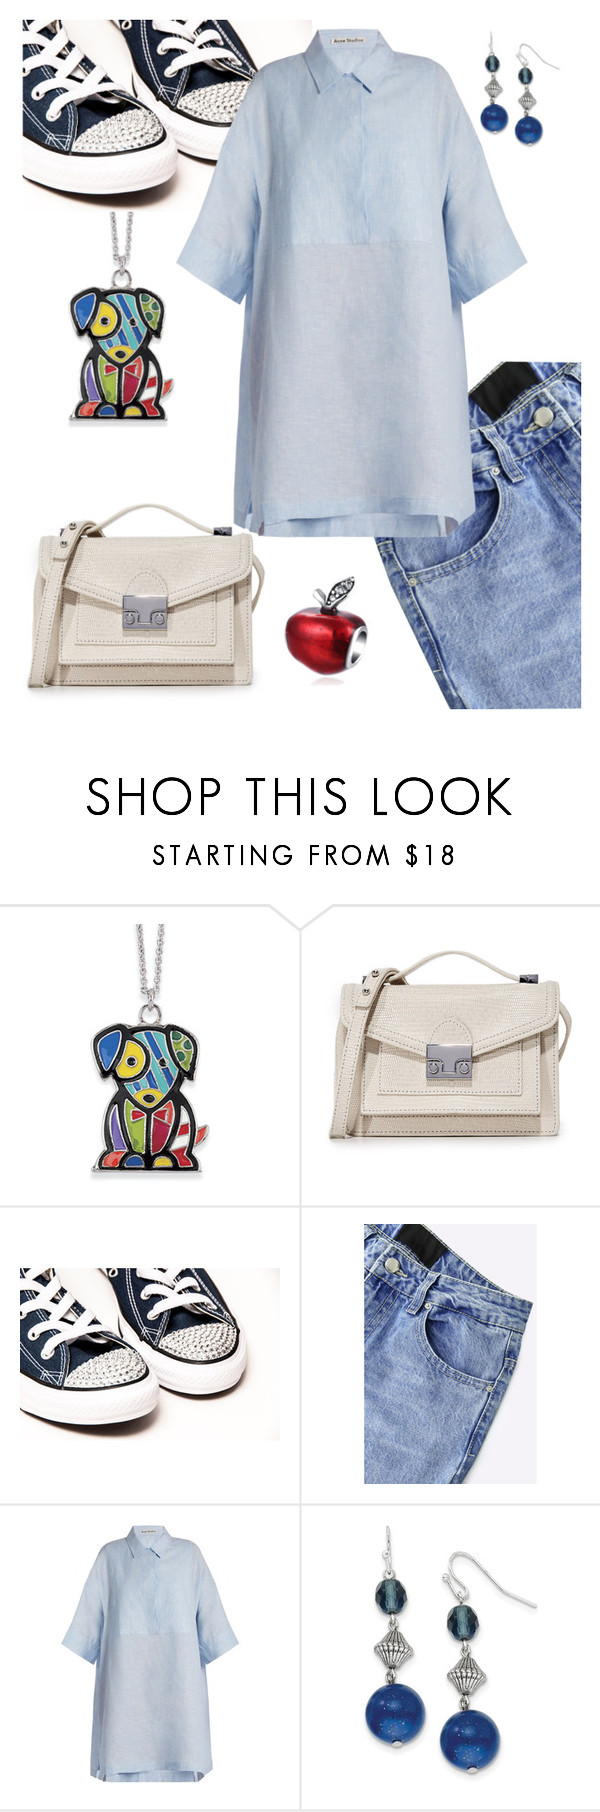 """""""Shirt Dress."""" by schenonek ❤ liked on Polyvore featuring Natures Jewelry, Loeffler Randall, Acne Studios and 1928"""